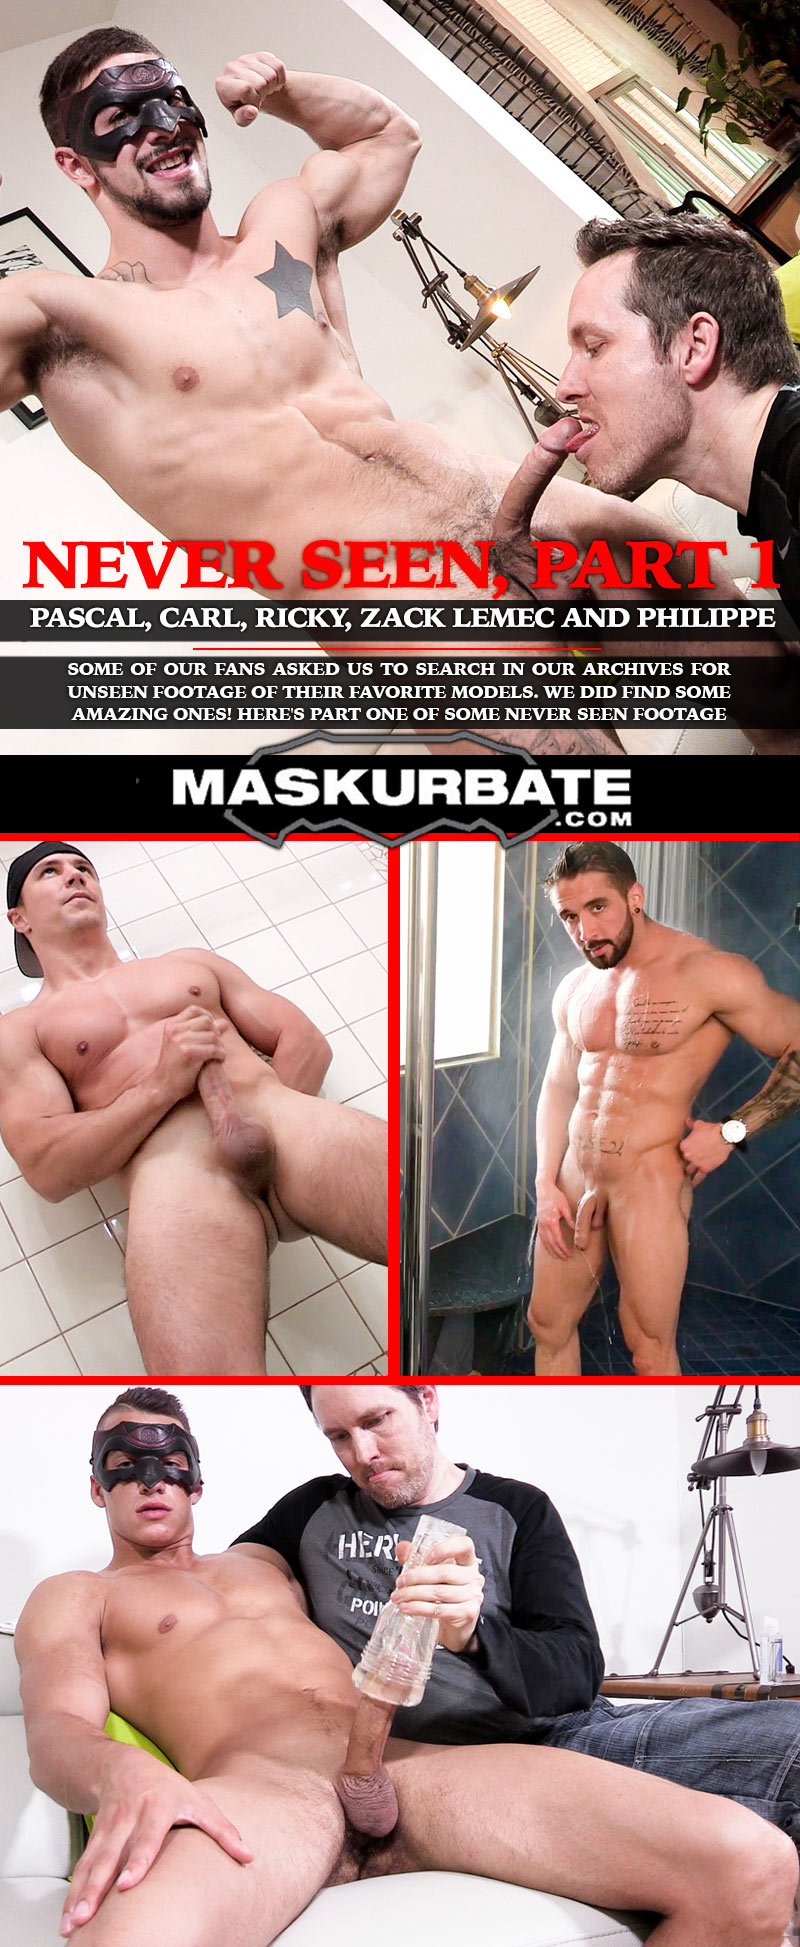 Never Seen, Part 1 (feat. Pascal, Carl, Ricky, Zack Lemec and Philippe) at Maskurbate